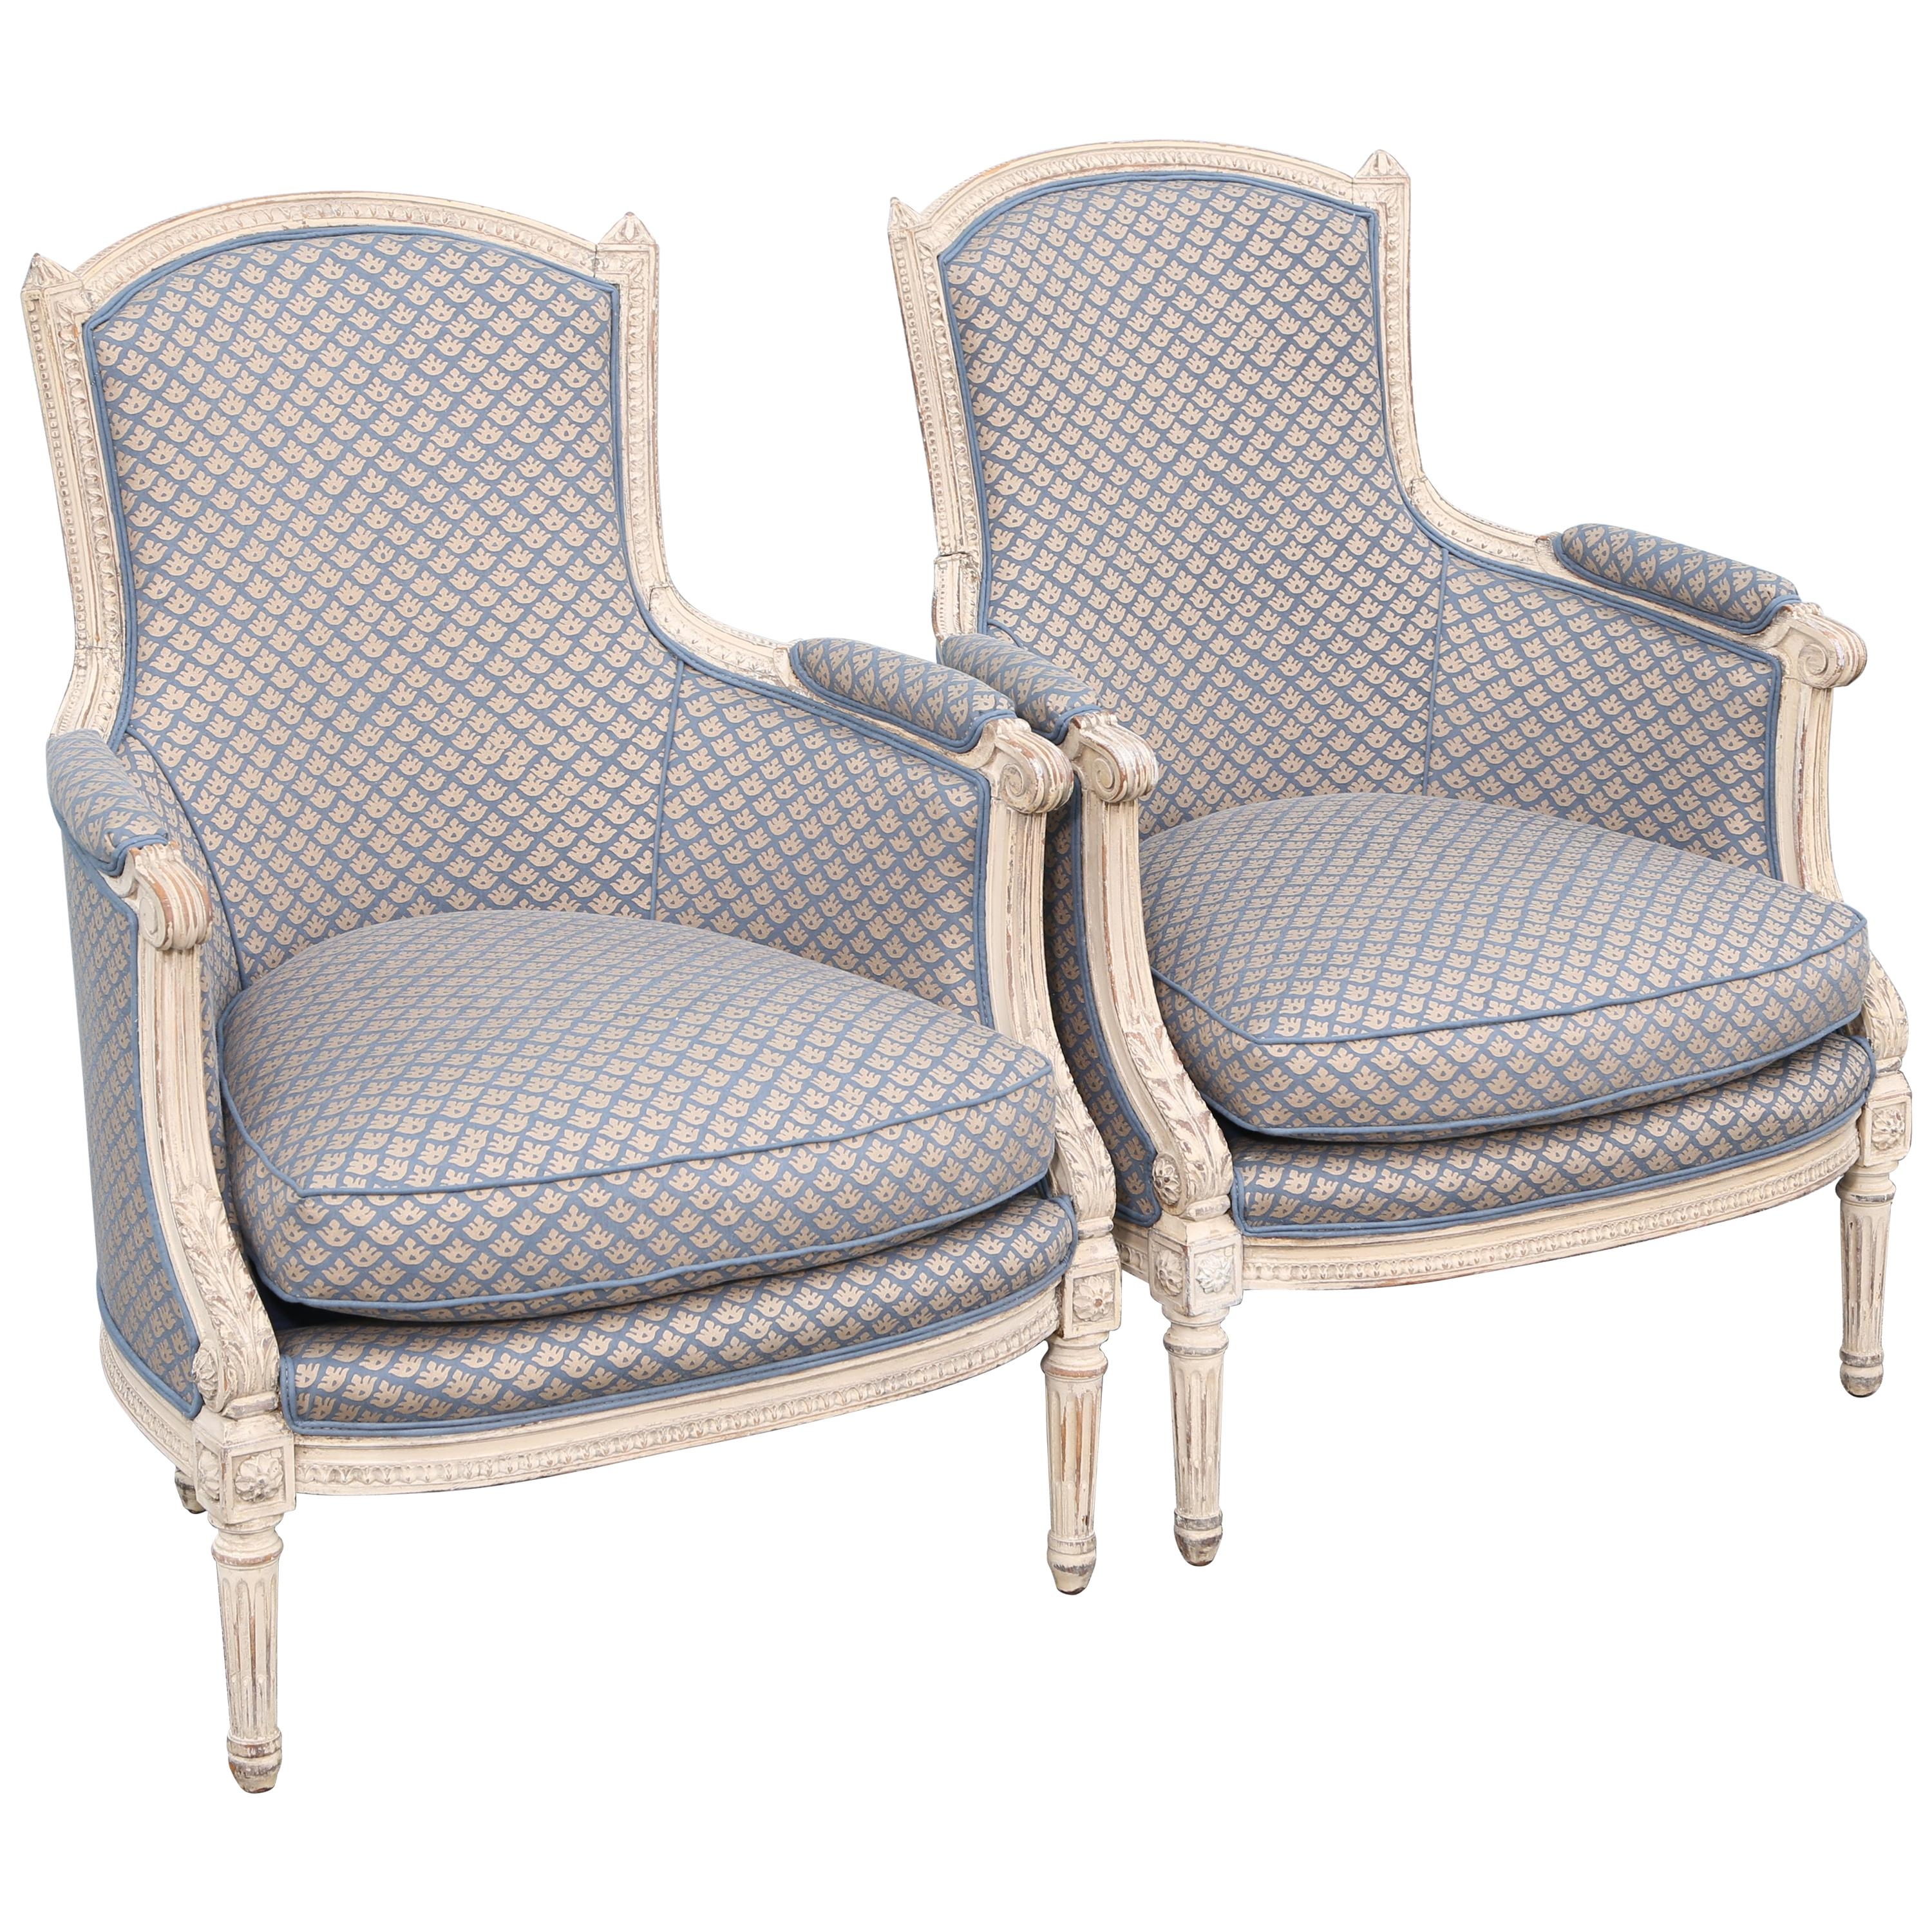 Fauteuil Shabby Chic 18th Century And Earlier Bergere Chairs 83 For Sale At 1stdibs